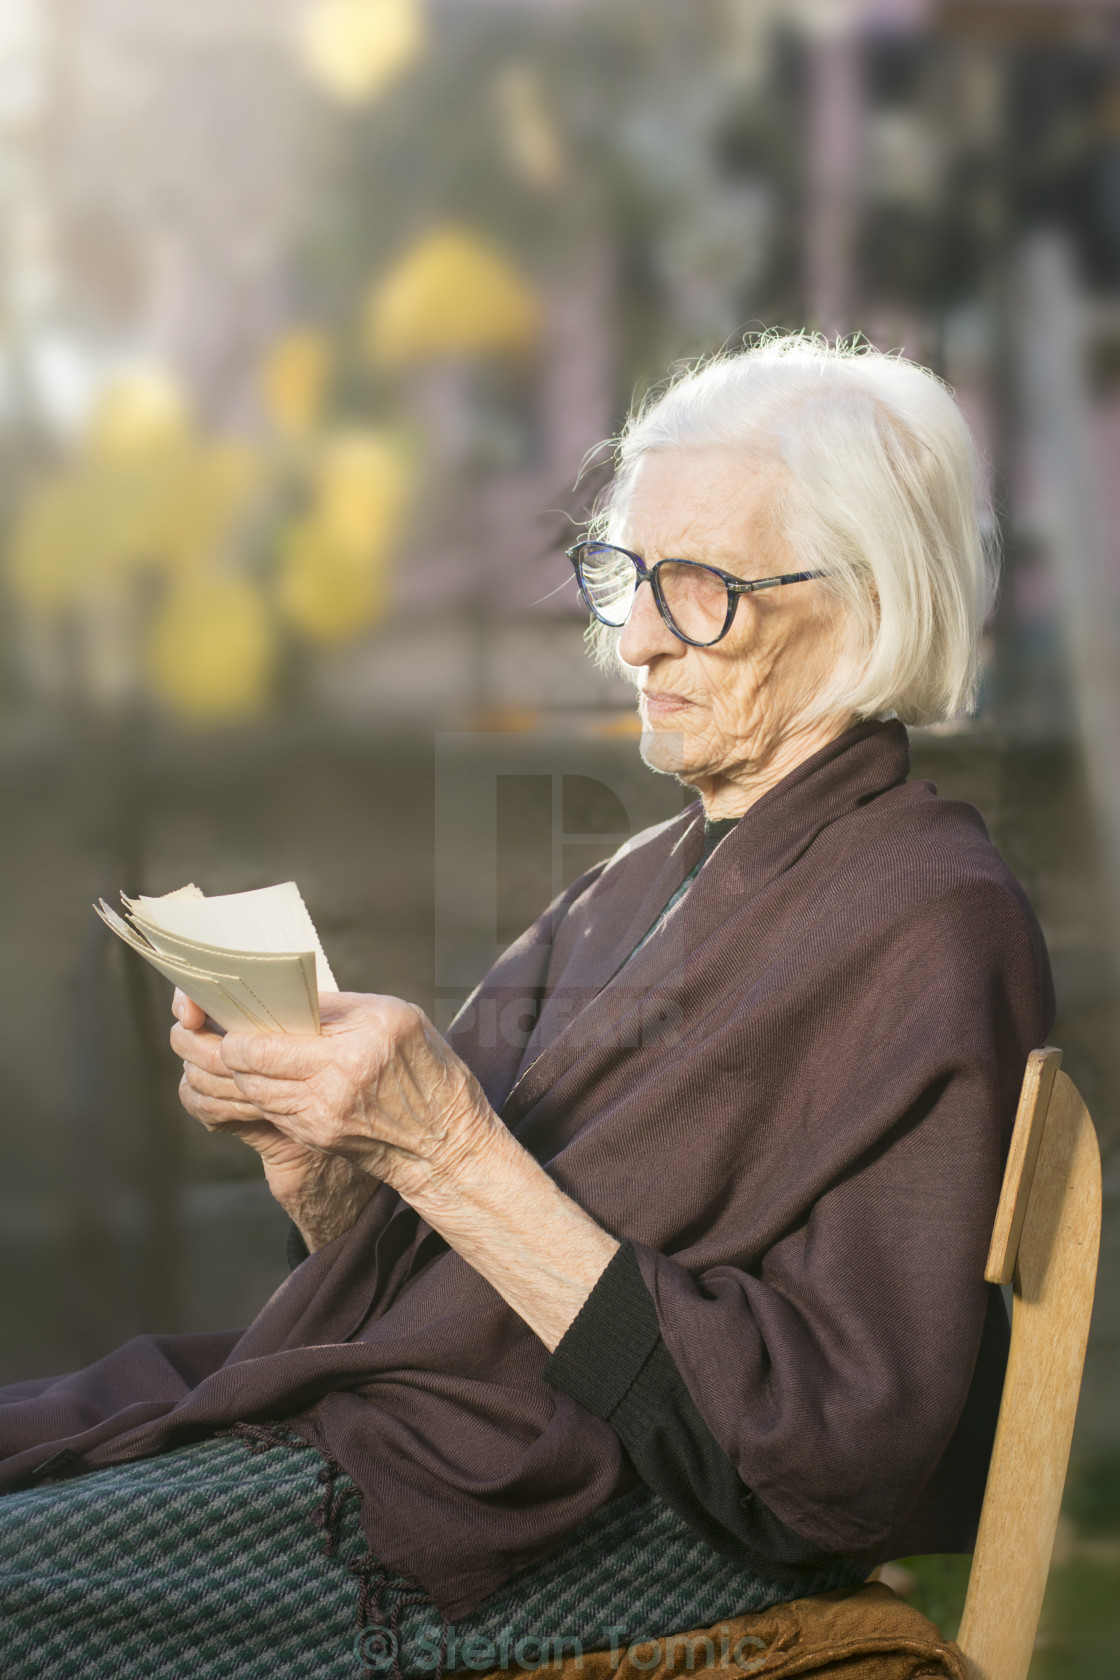 """Grandma looking at some very old photos"" stock image"